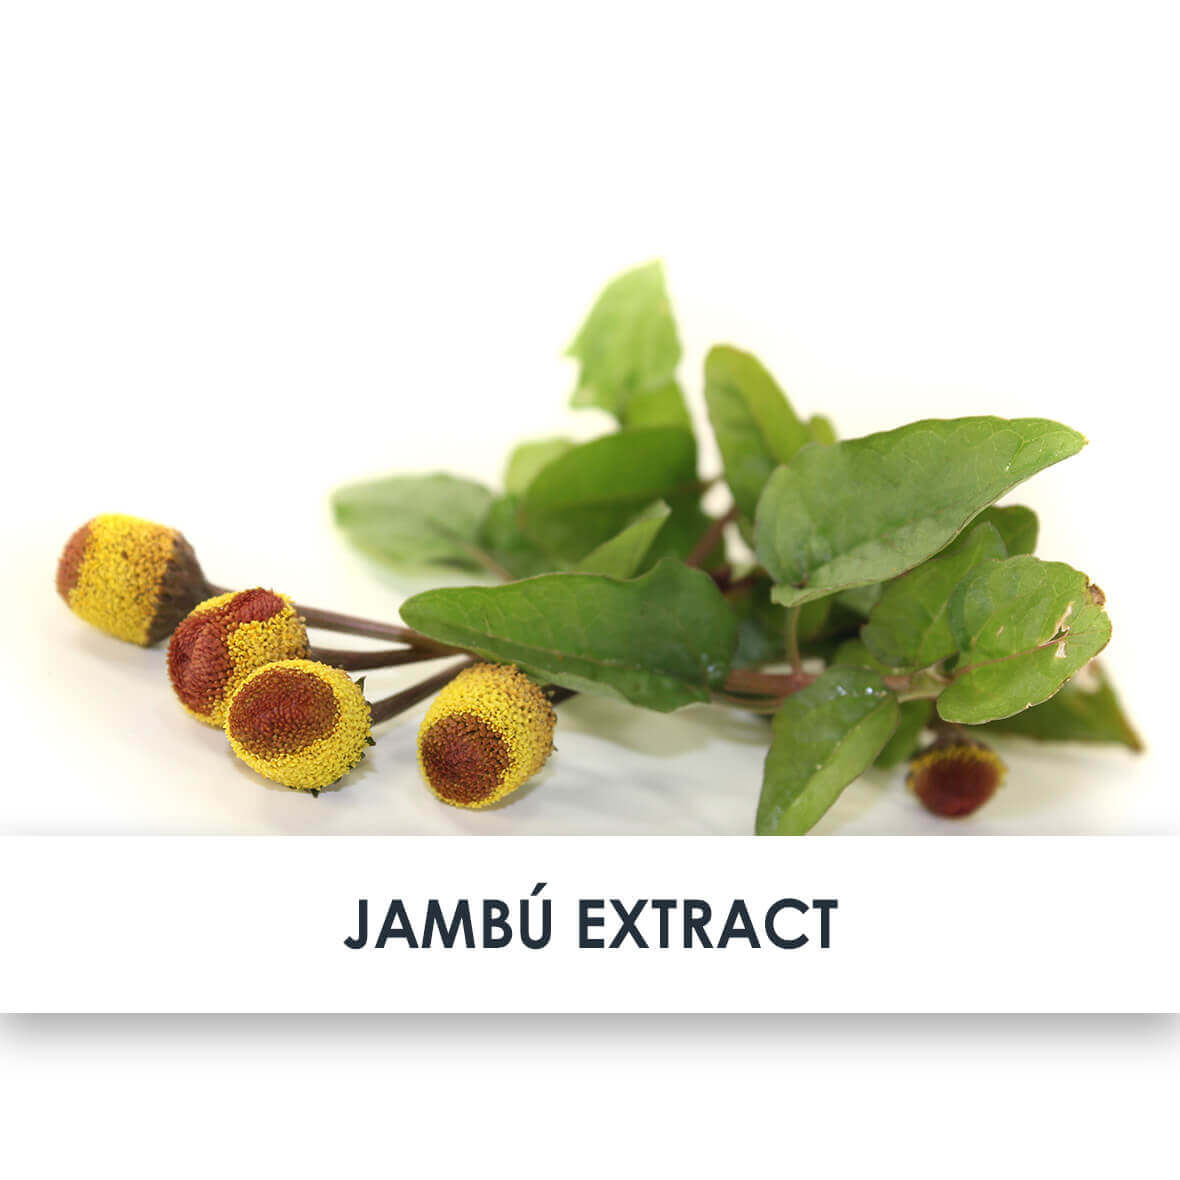 Jambú Extract Skincare Benefits